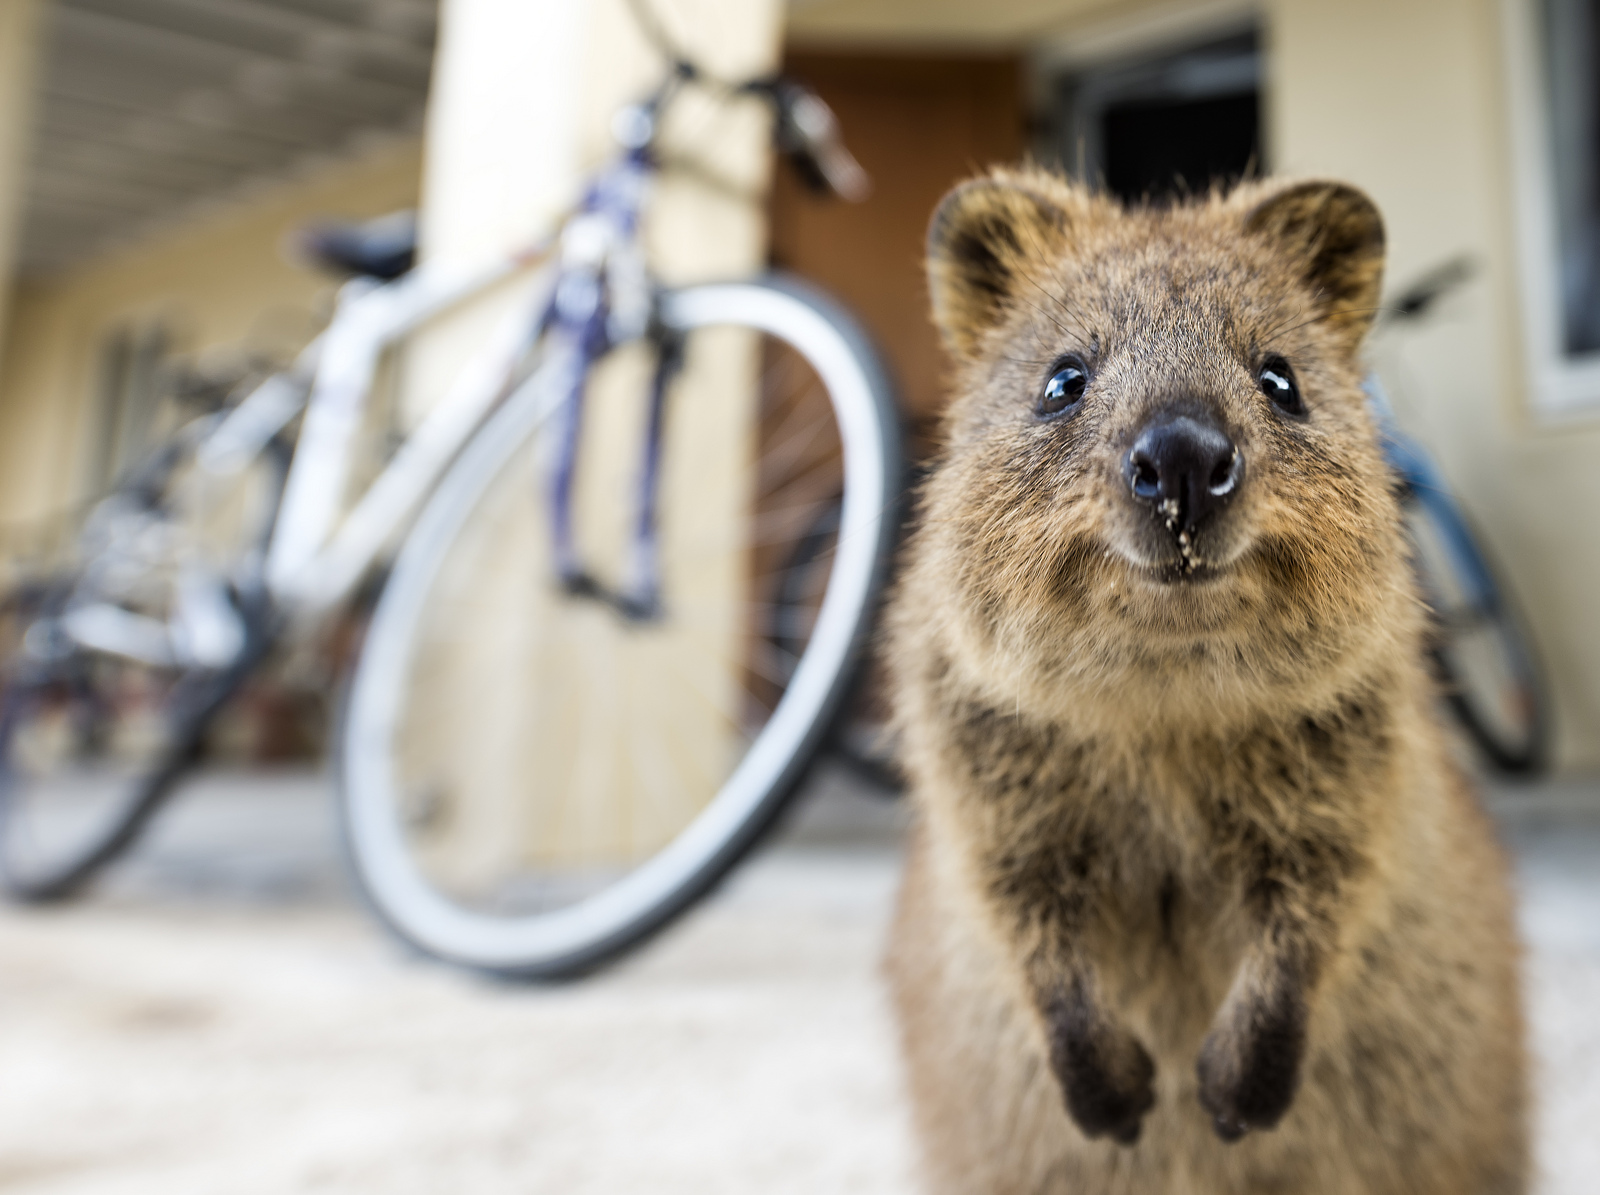 quokka smiling - photo #12